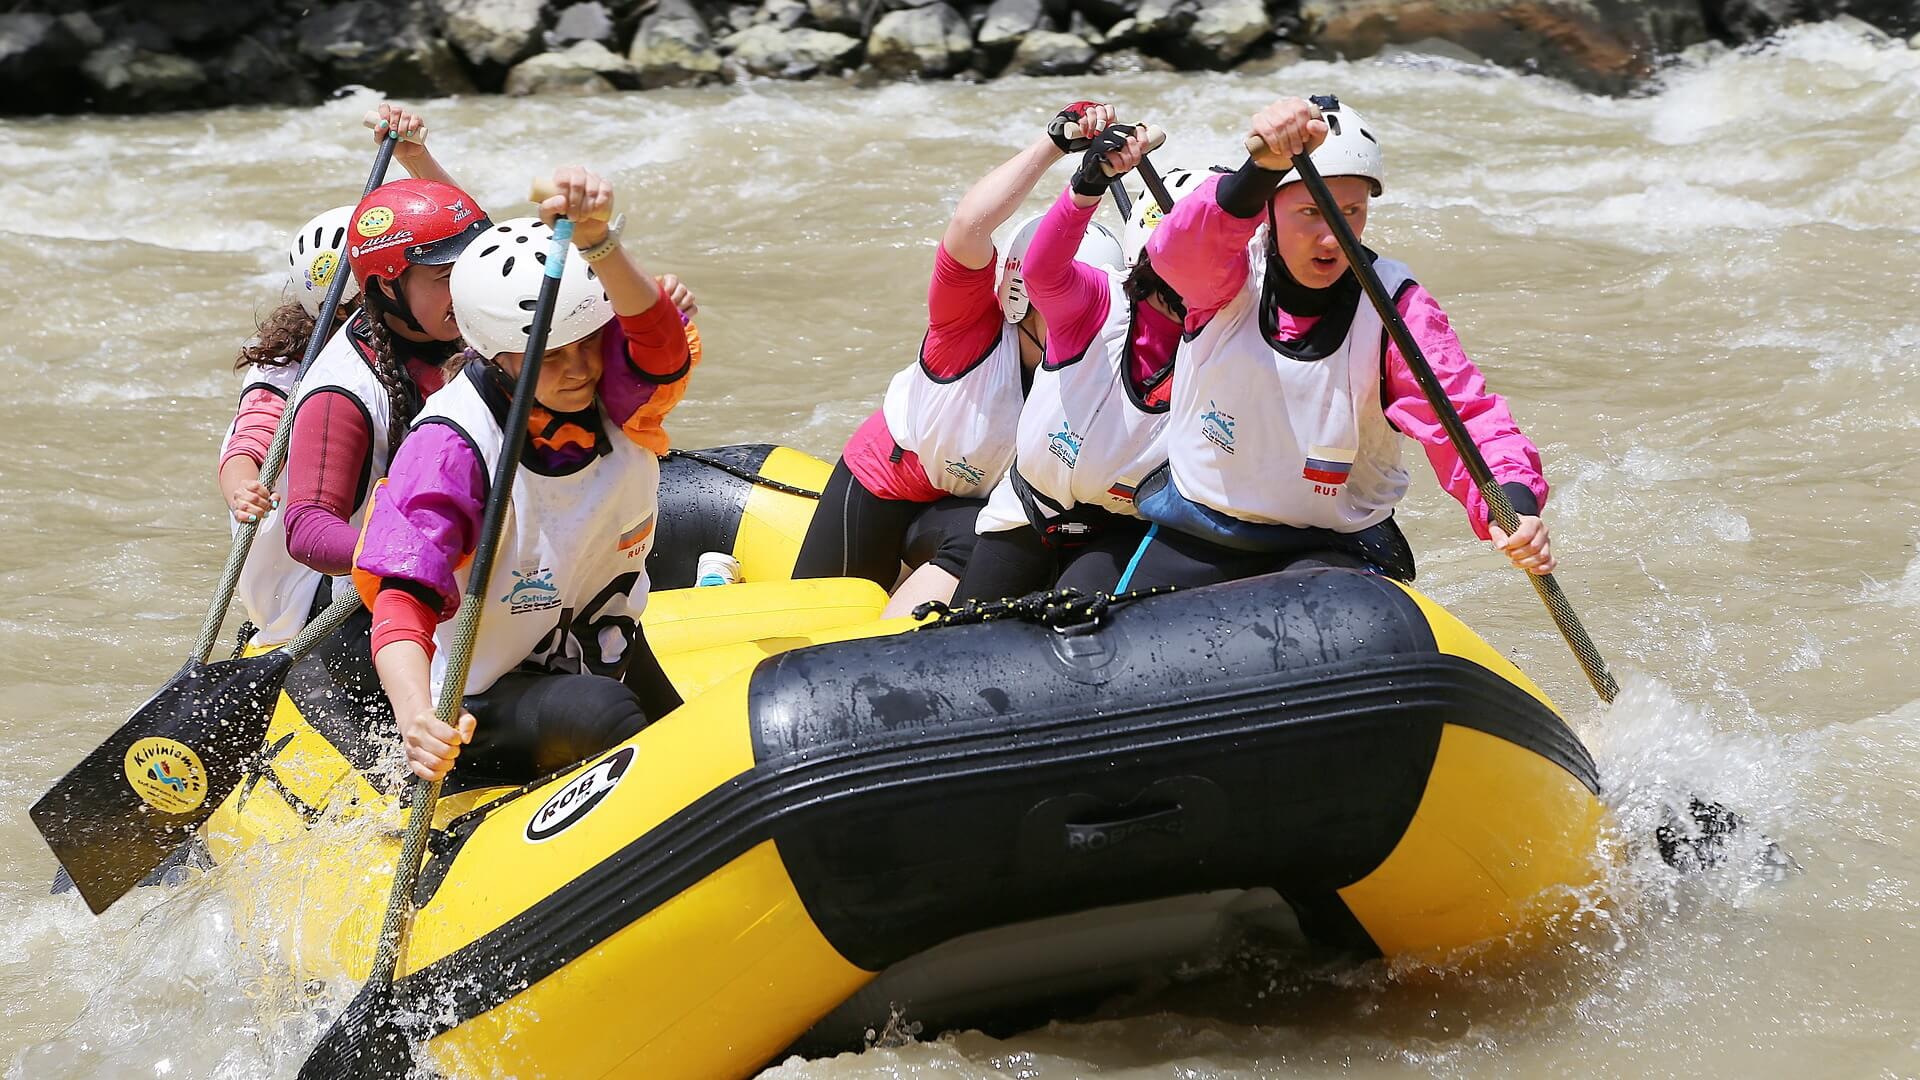 FEMALE URINATION DEVICES FOR RAFTING TRIPS